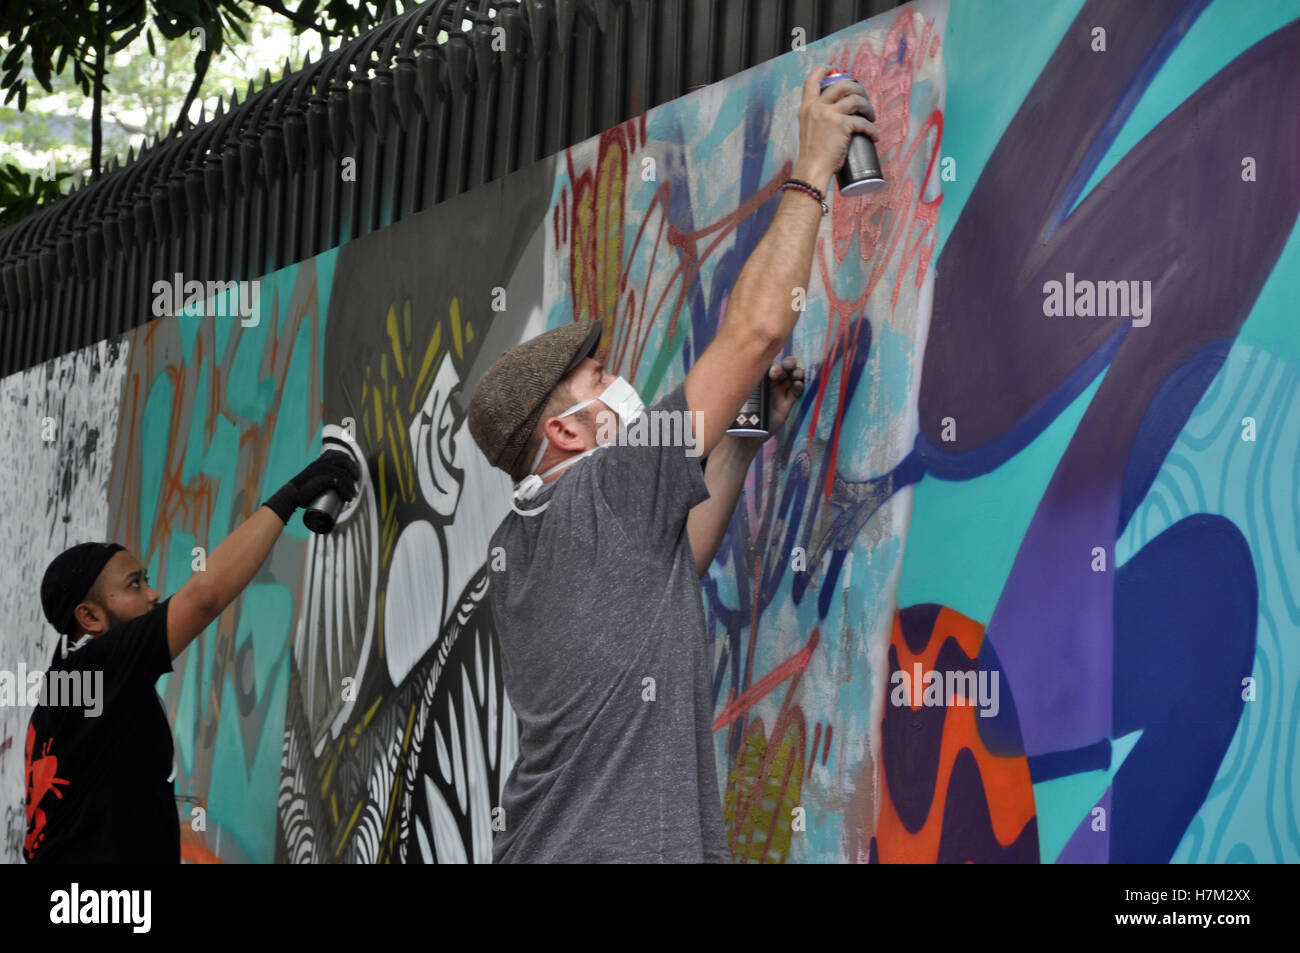 Collaboration Graffiti Artists From France And Indonesia Were Making Graffiti Art On The Walls Of Institute Francais Indonesia Ifi Building Jl Mh Thamrin